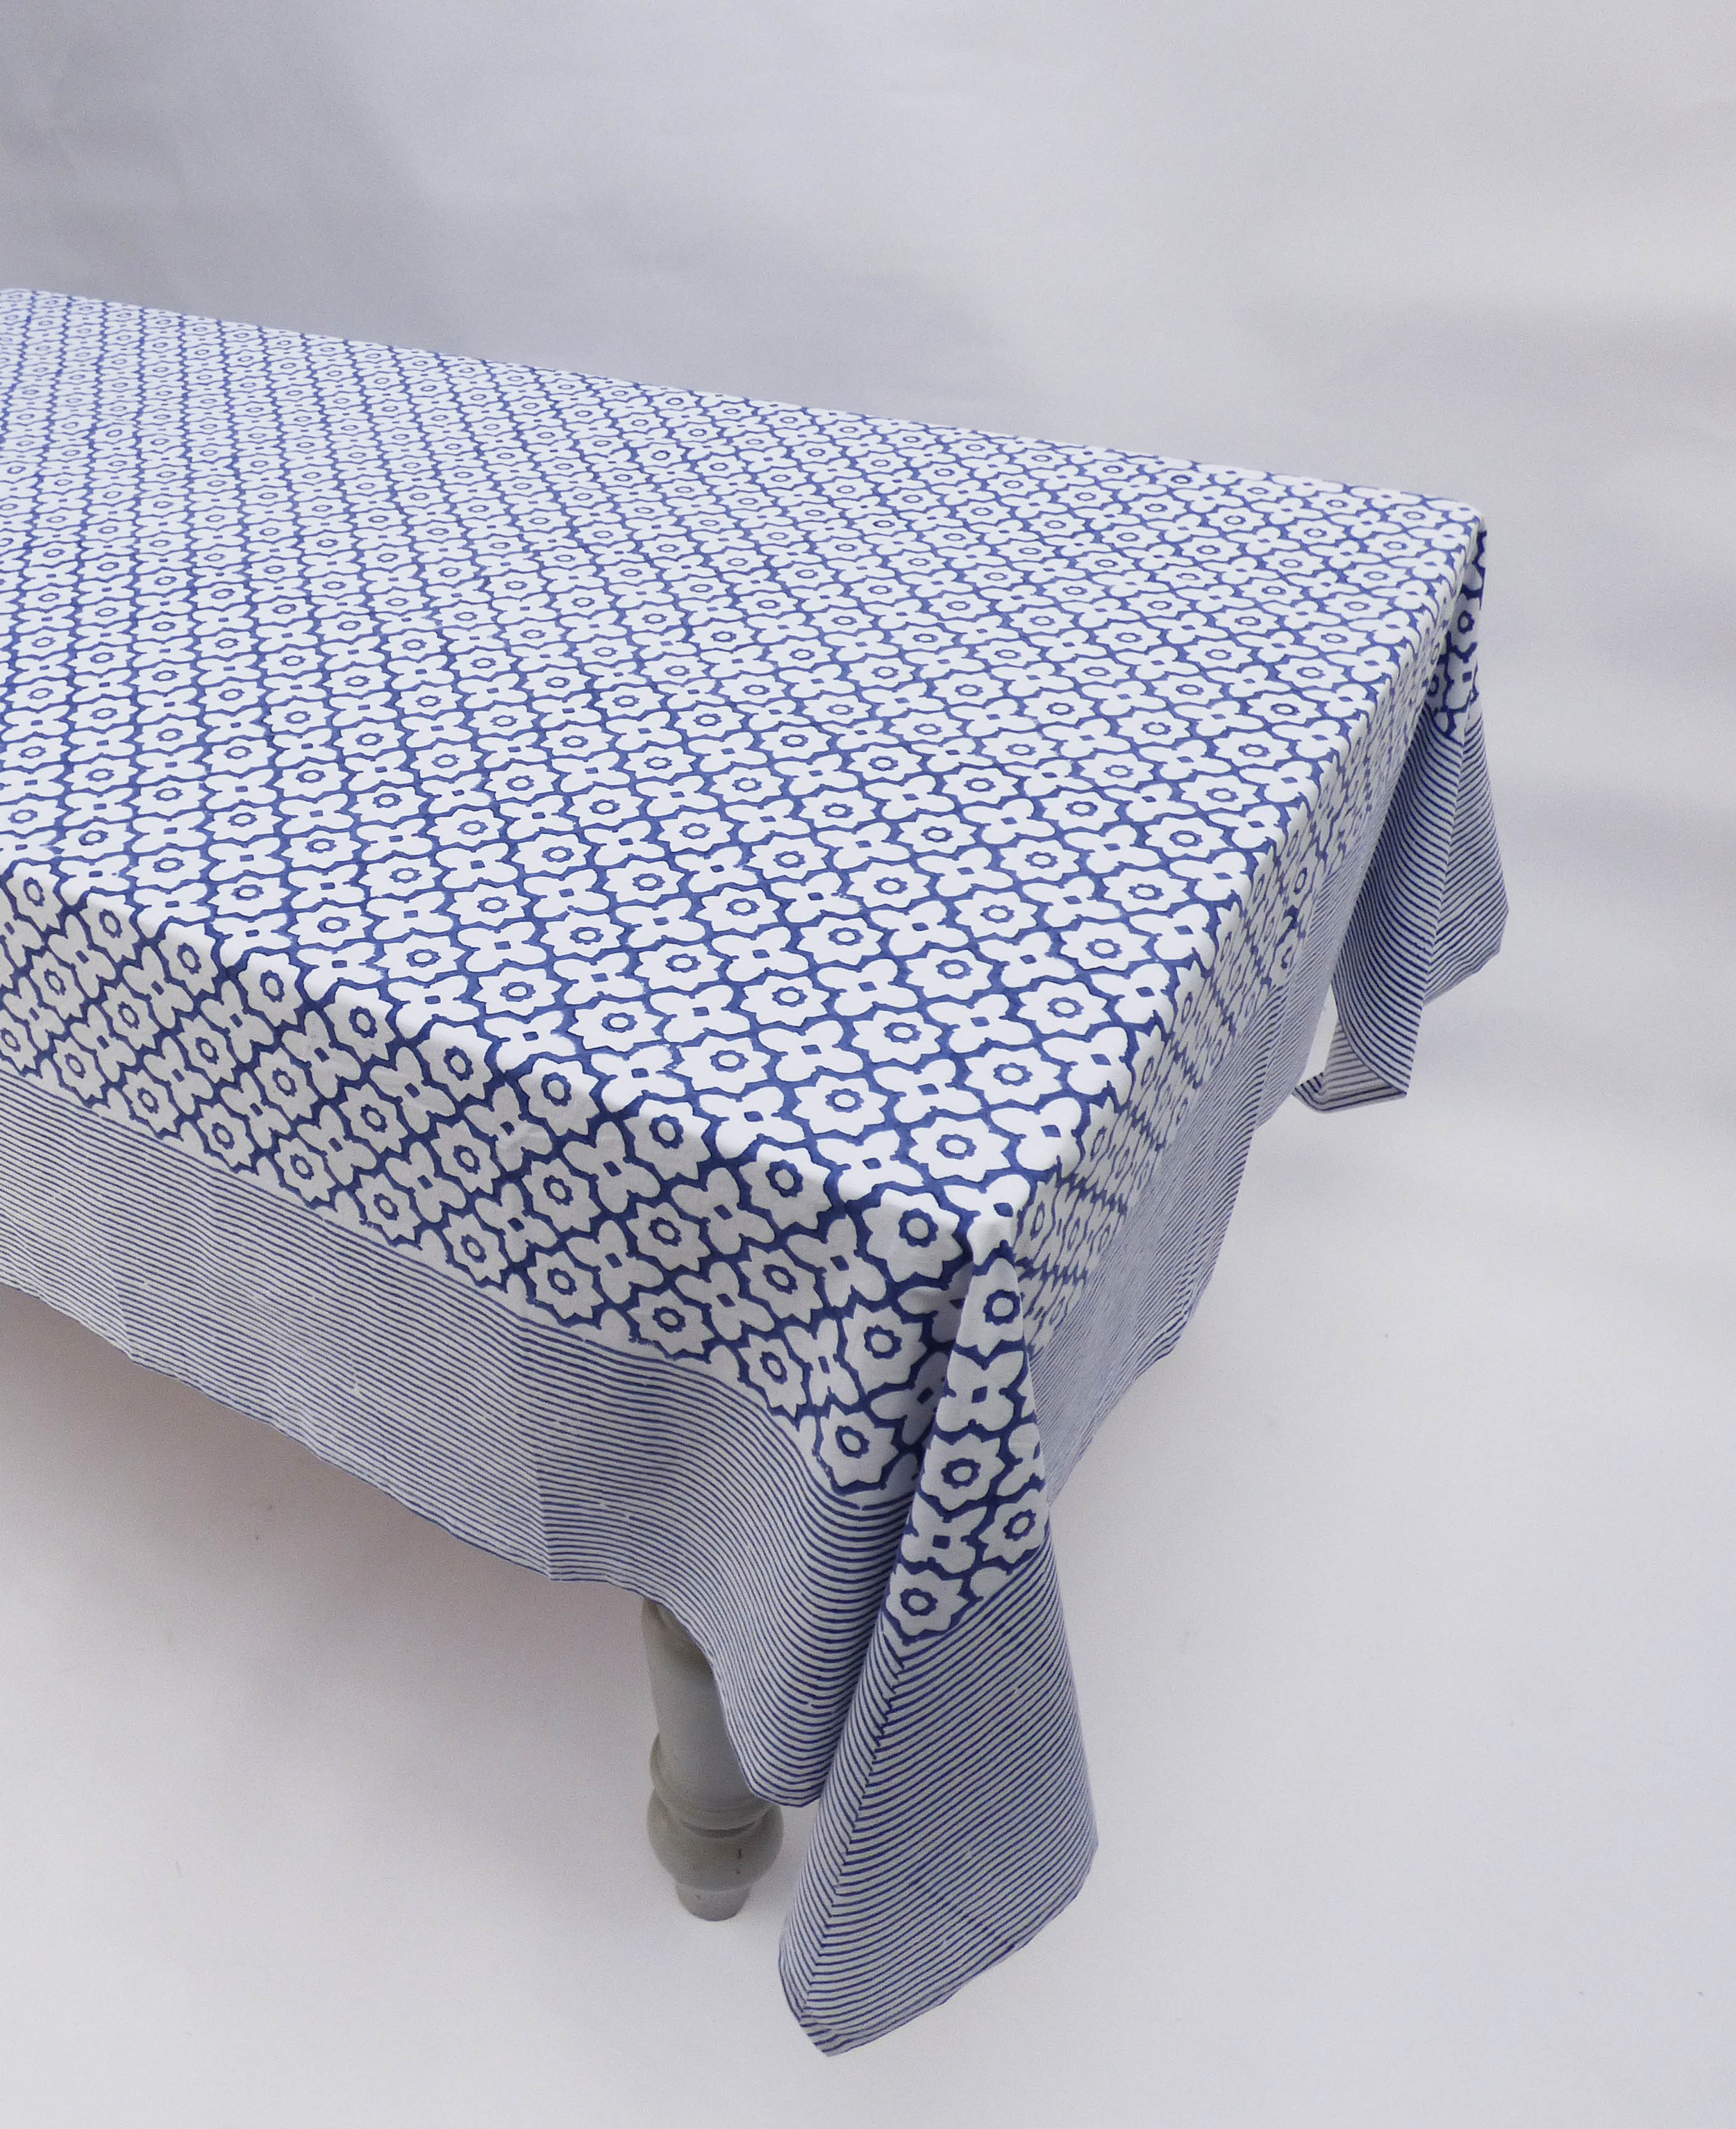 Morocco Design Cotton Tablecloths In Blue